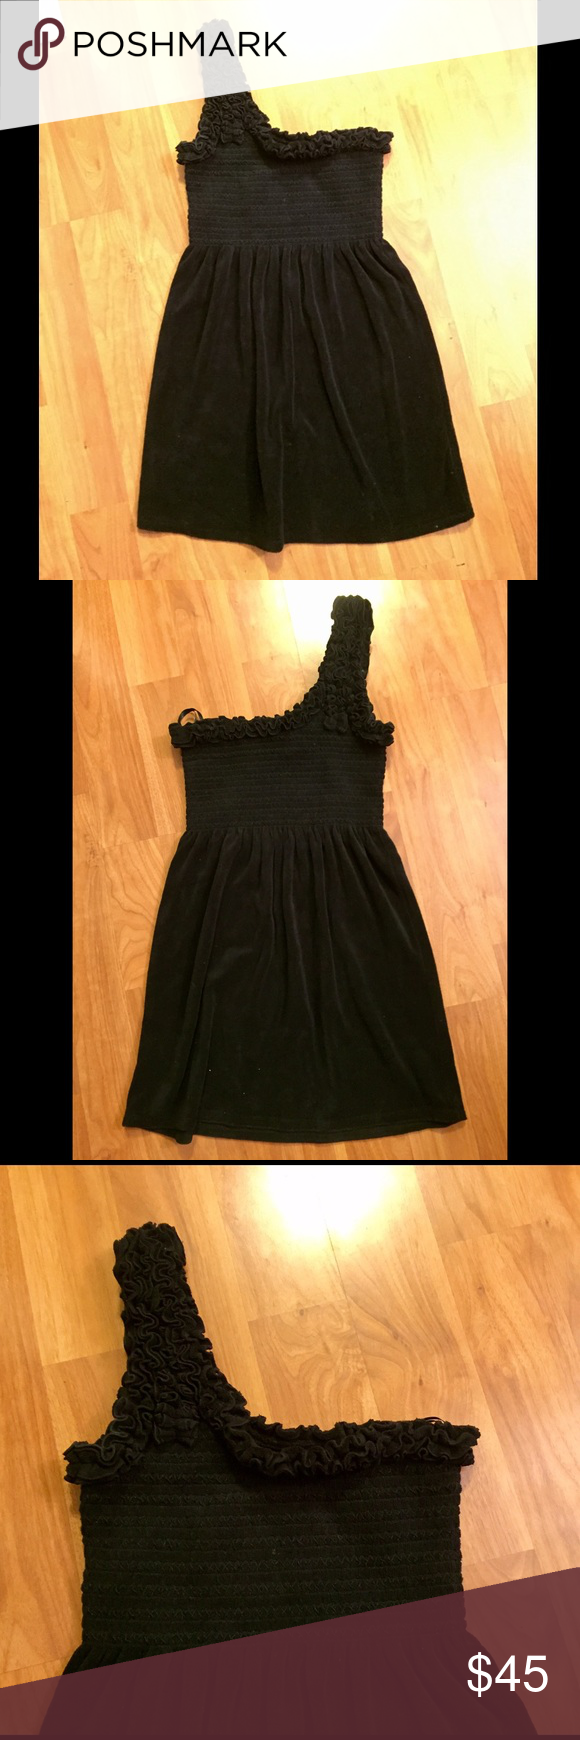 Juicy couture one strap dress Black terry cloth Juicy Couture one shoulder dress Juicy Couture Dresses One Shoulder